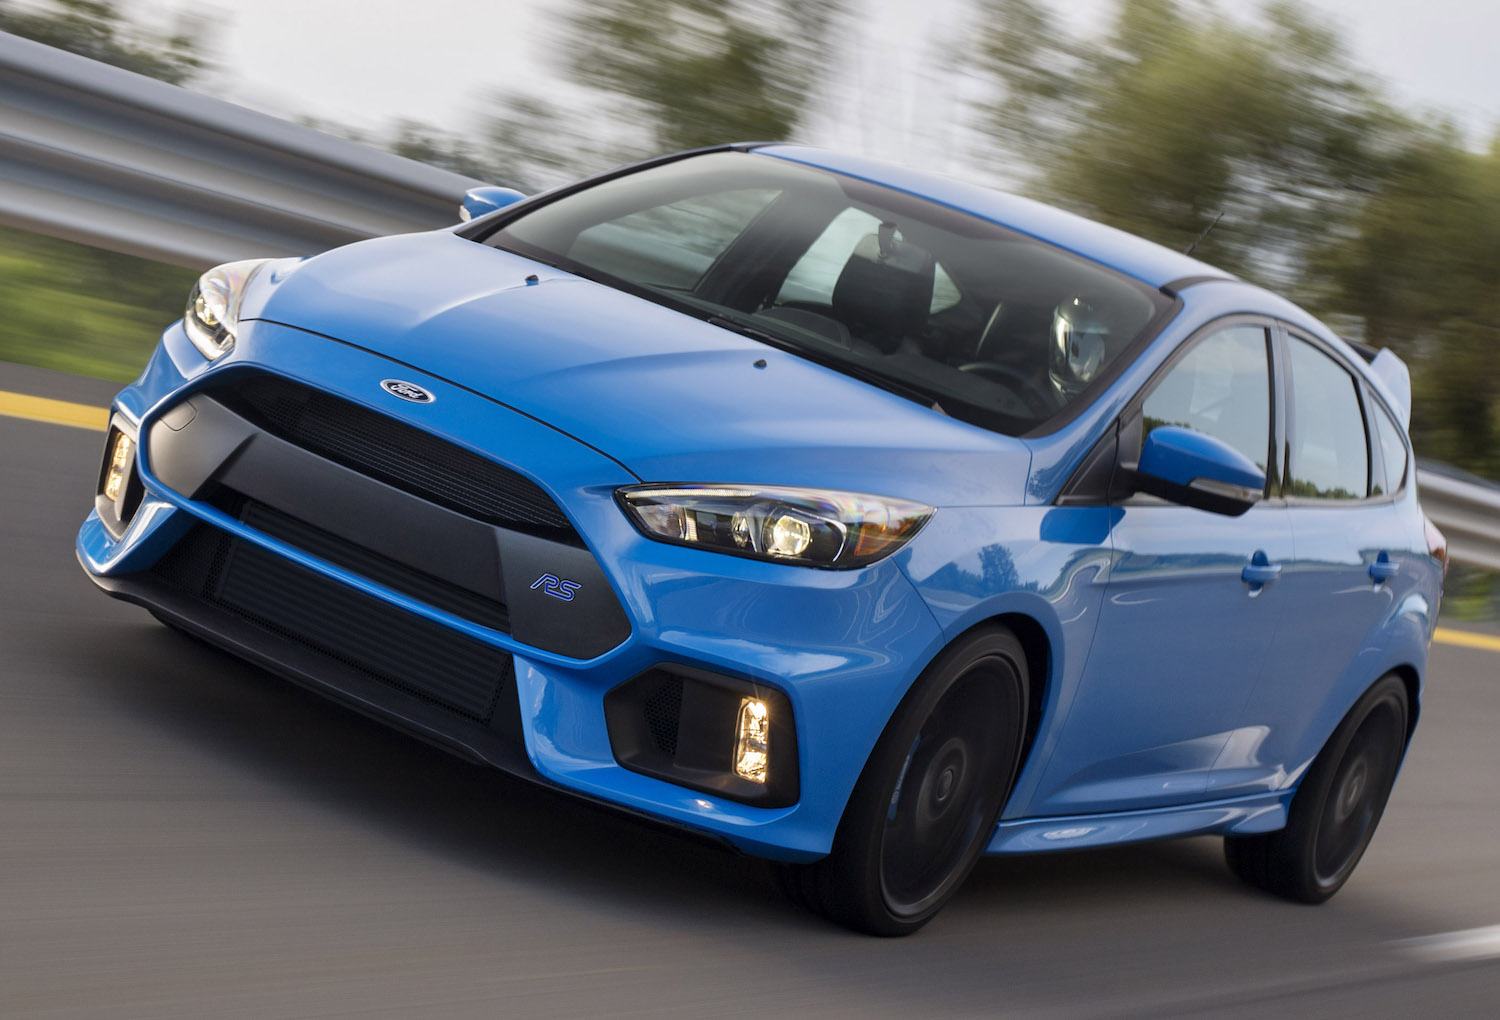 year cost url model skv reportedly wordpress w years will focus rs last price ford q com s more files sheetmetal than